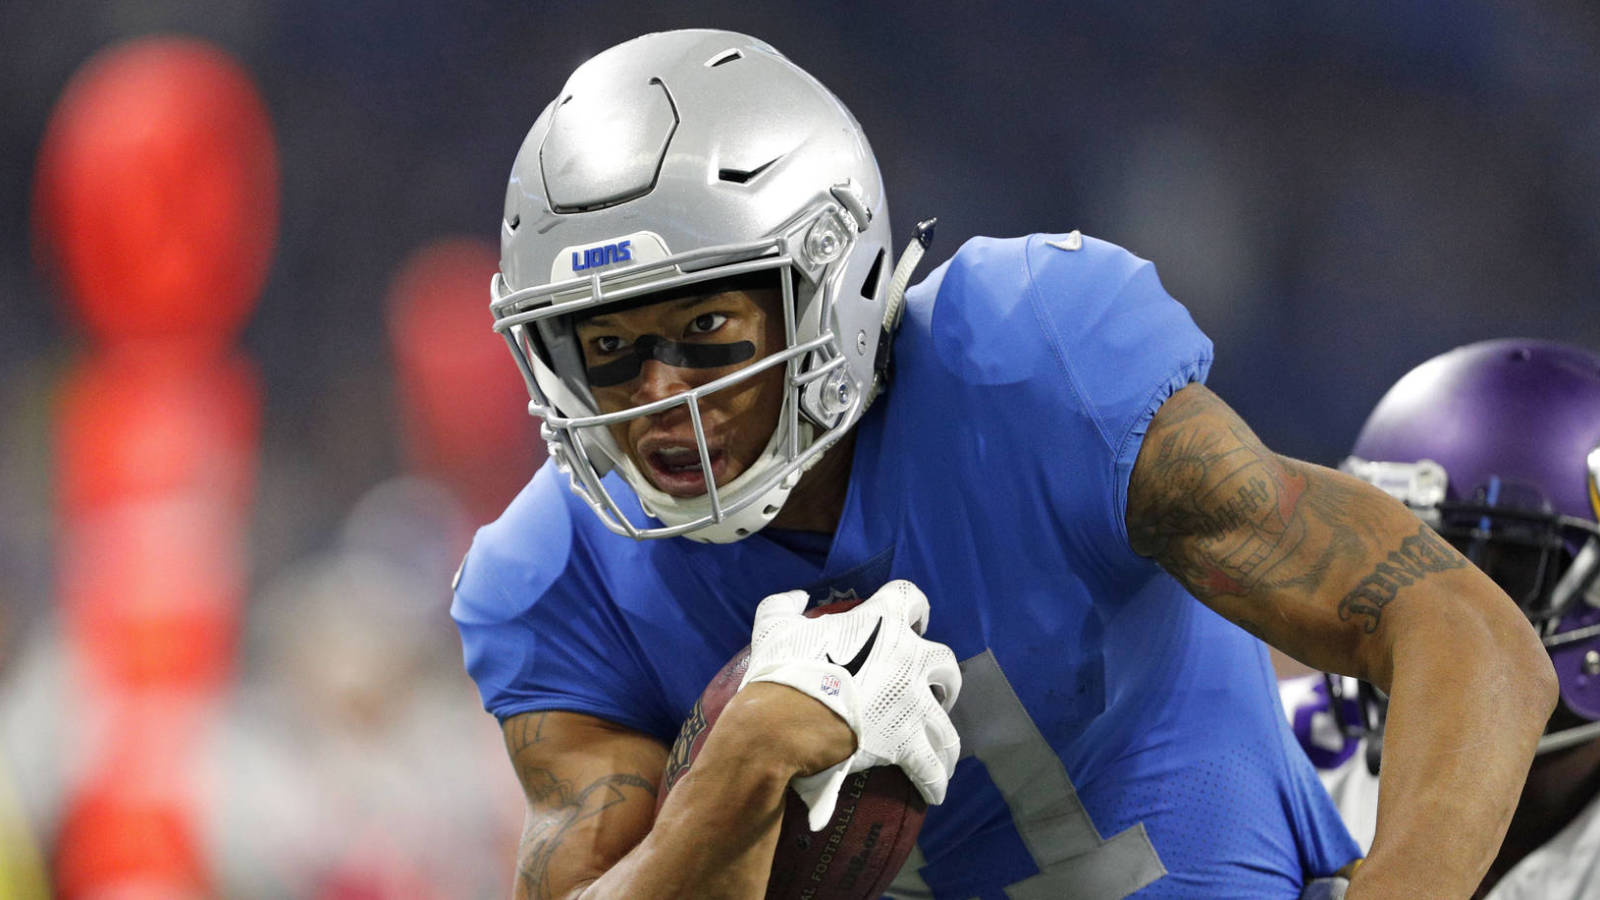 nfl 39 s marvin jones pays tribute to native background with great tattoo. Black Bedroom Furniture Sets. Home Design Ideas